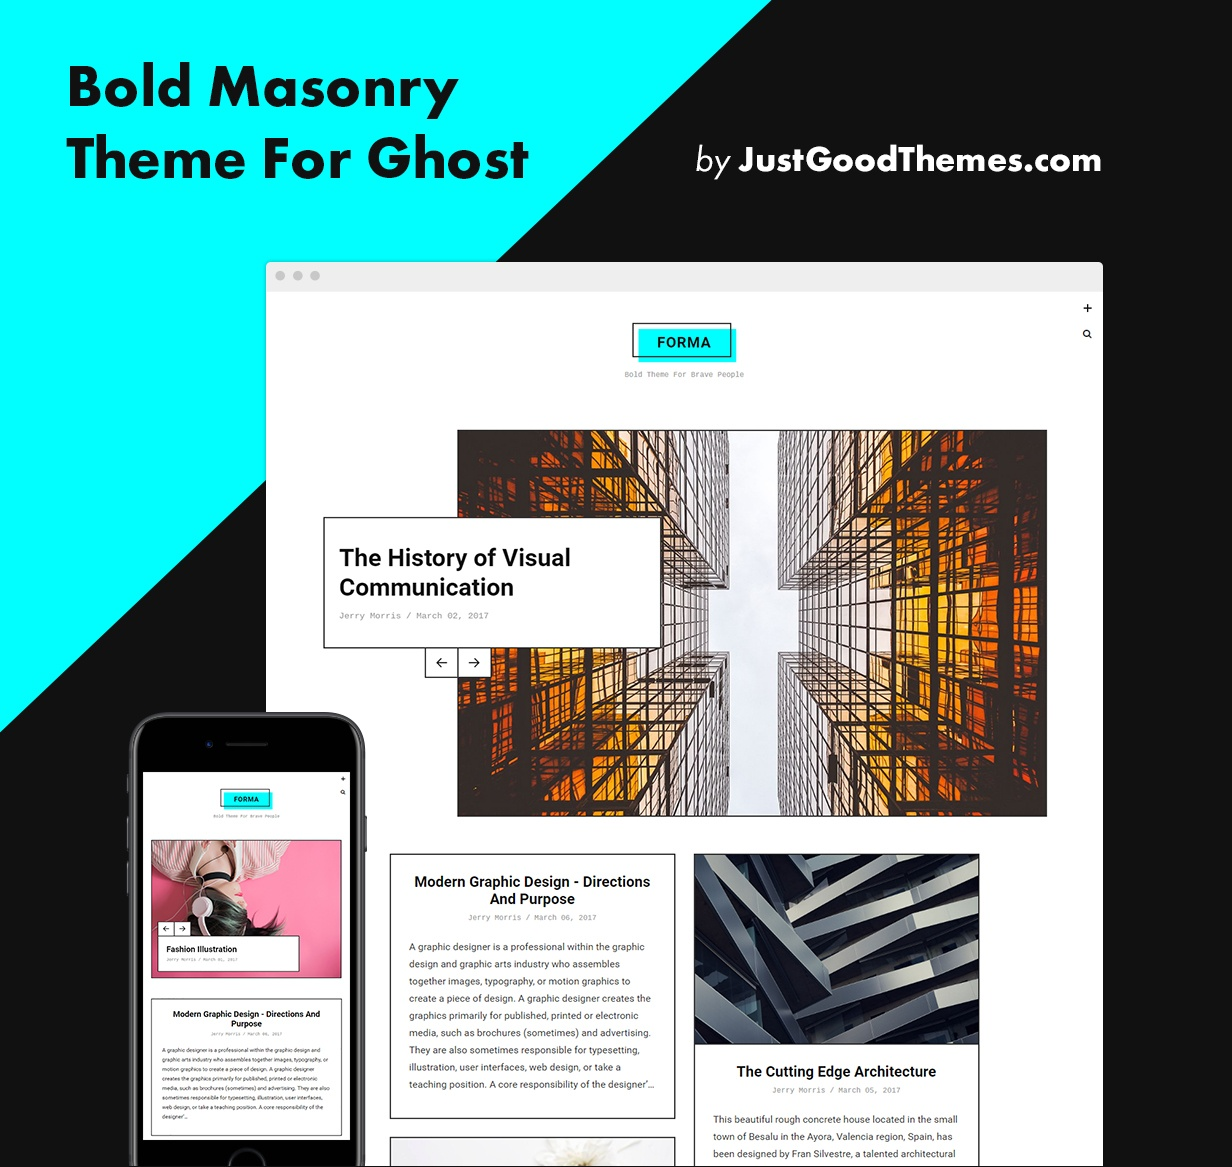 Forma - Bold Masonry Theme For Ghost